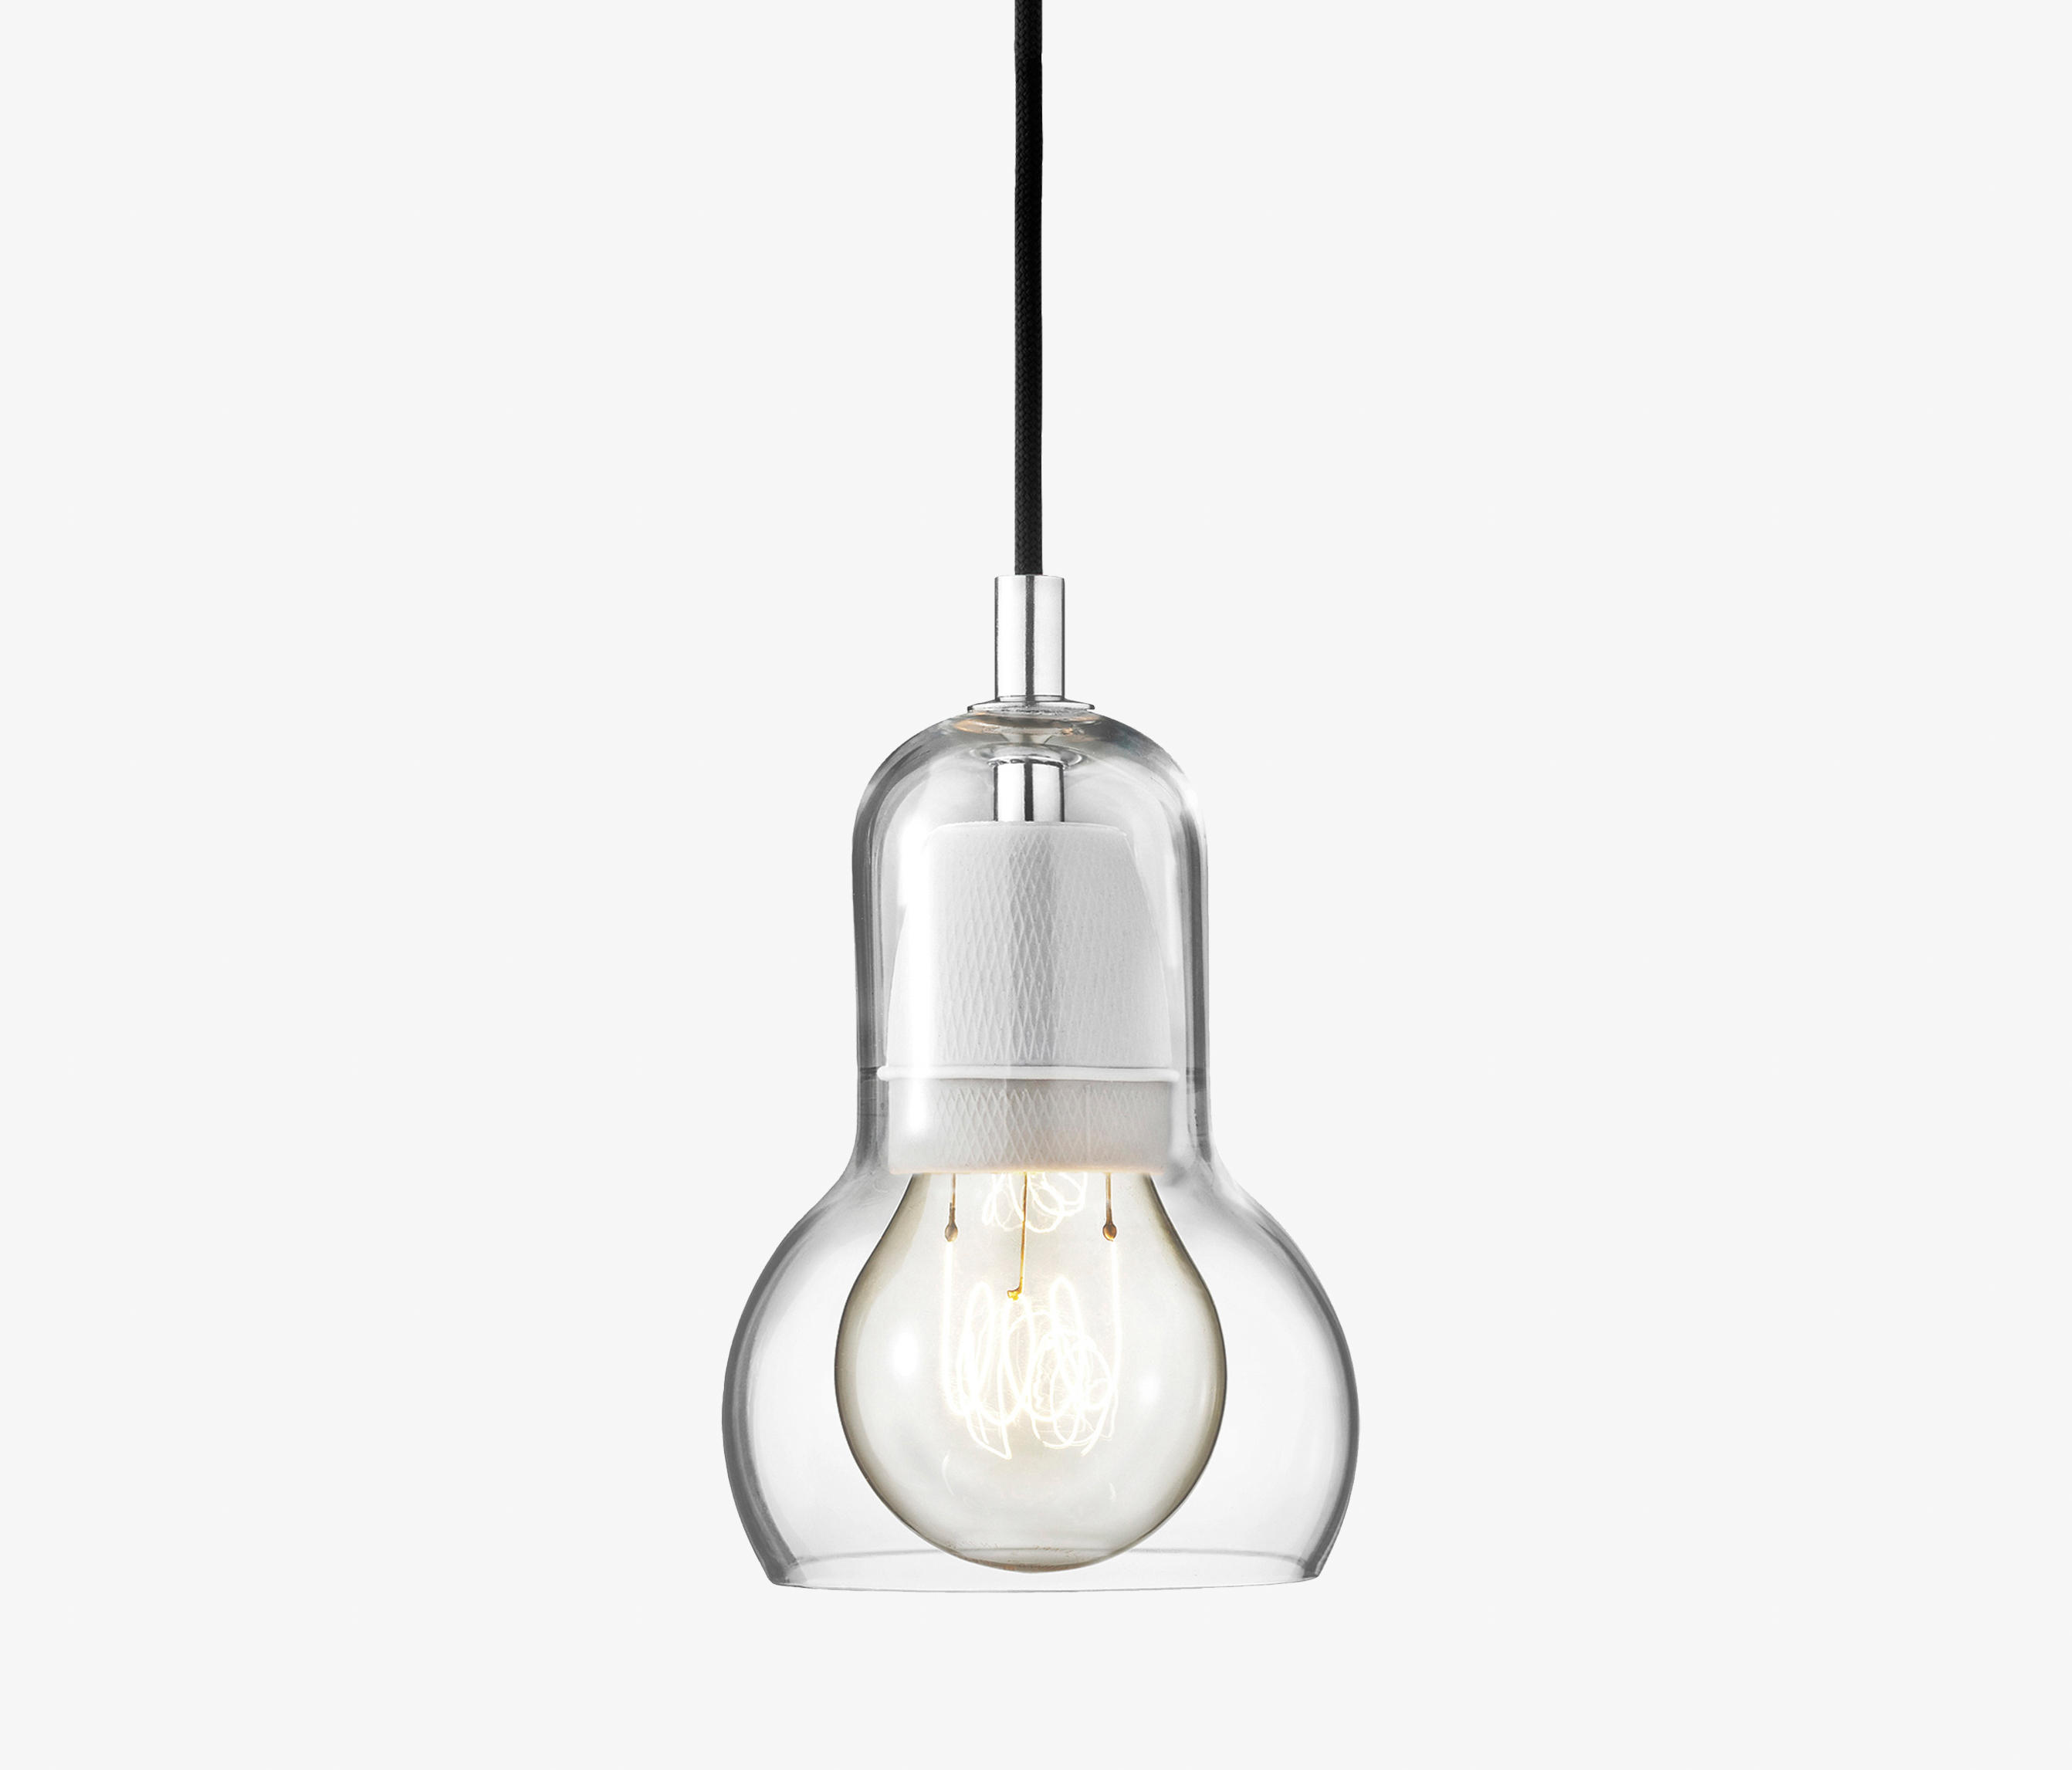 instant track type feet lamp length stglighting wire factory pendants light chandelier decorative bulb pendant restaurant lights industrial h item include not